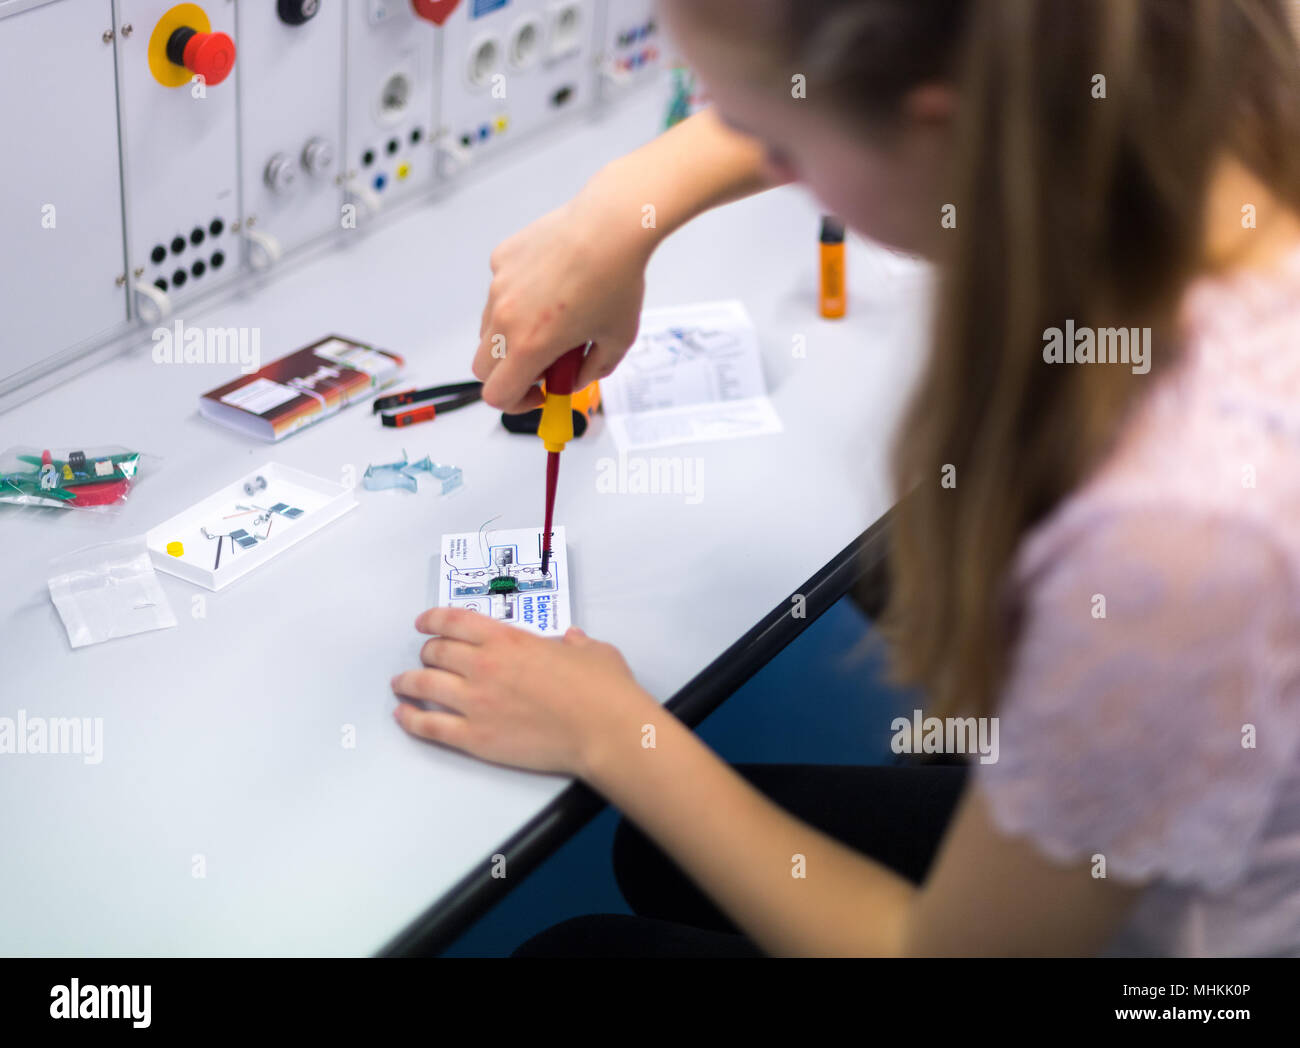 26 April 2018, Leipzig, Germany: A student building an electric motor in the training center of Siemens Professional Education as part of nationwide Girls' Day. On Girls' Day, schoolgirls can get a taste of technical, scientific and craft trades. Photo: Monika Skolimowska/dpa-Zentralbild/dpa - Stock Image